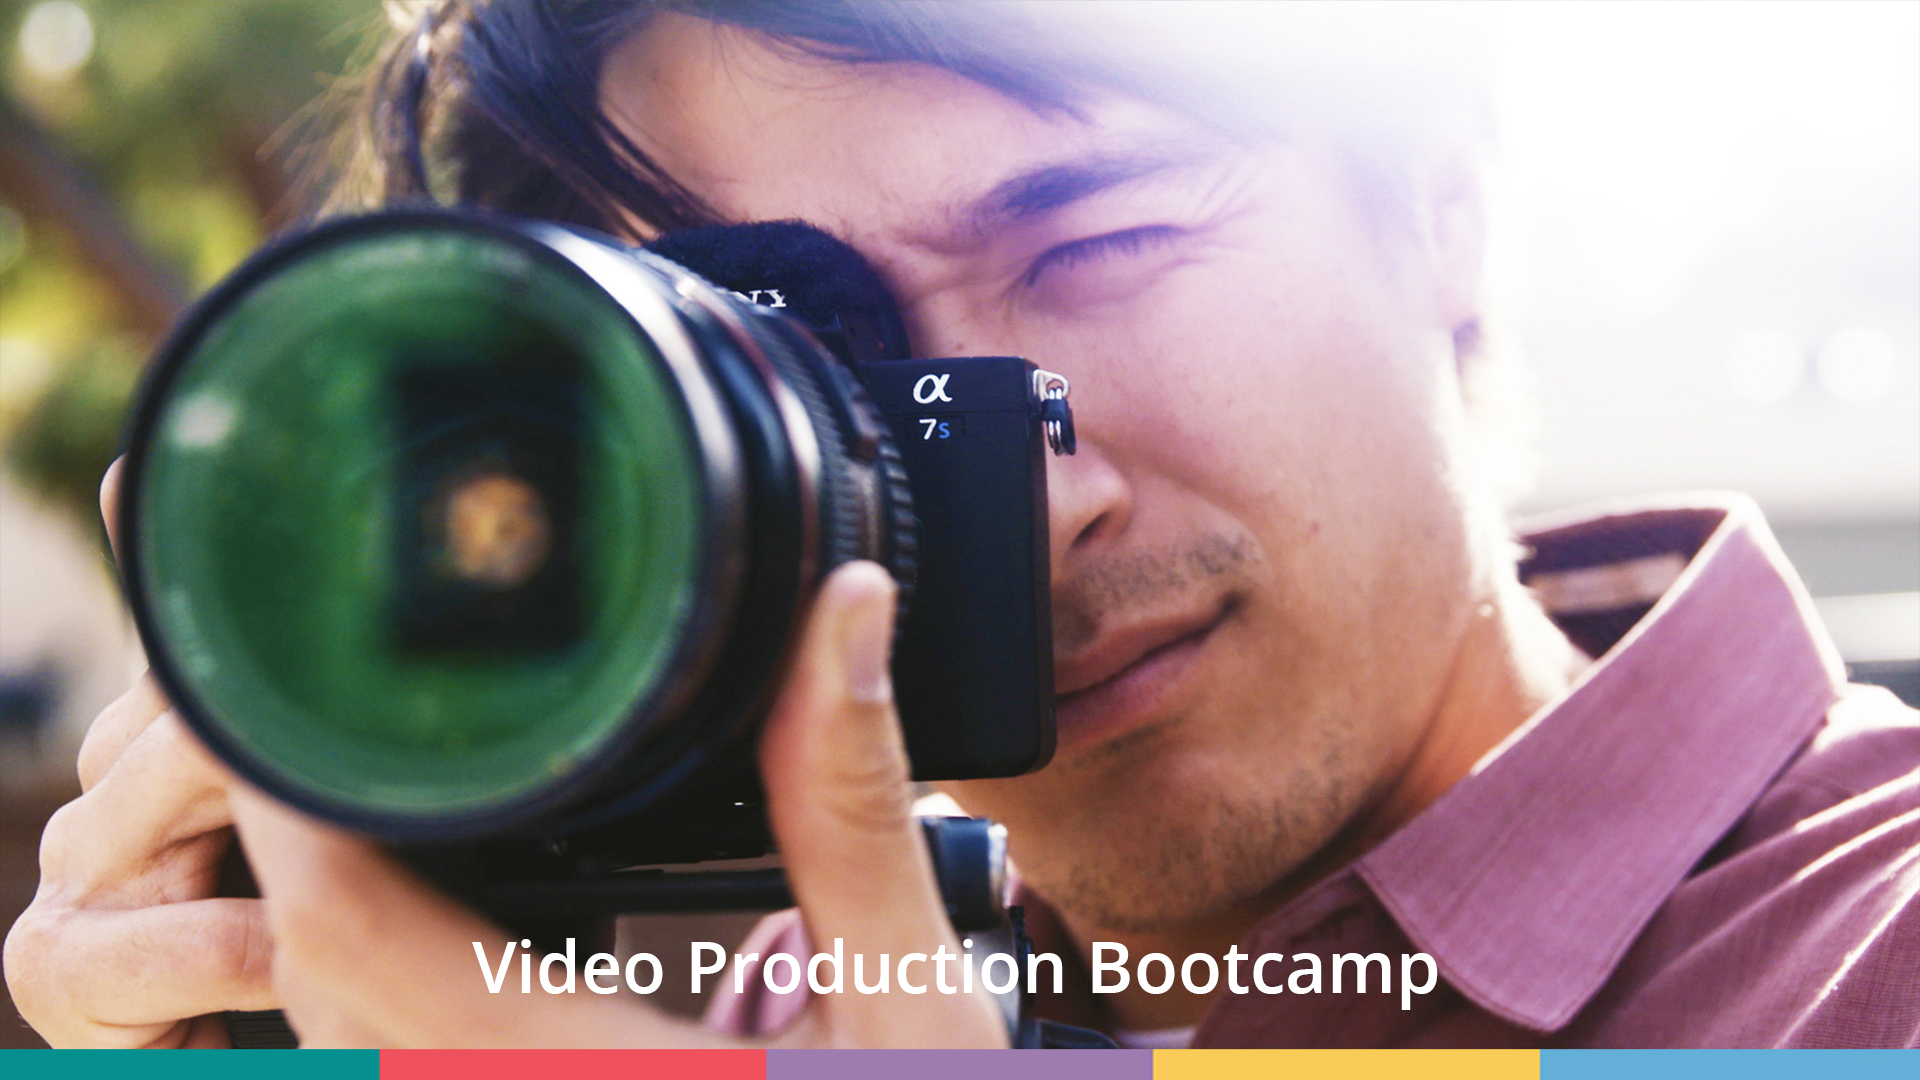 Video Production Bootcamp (online video course) [Online Code] by Video School Online